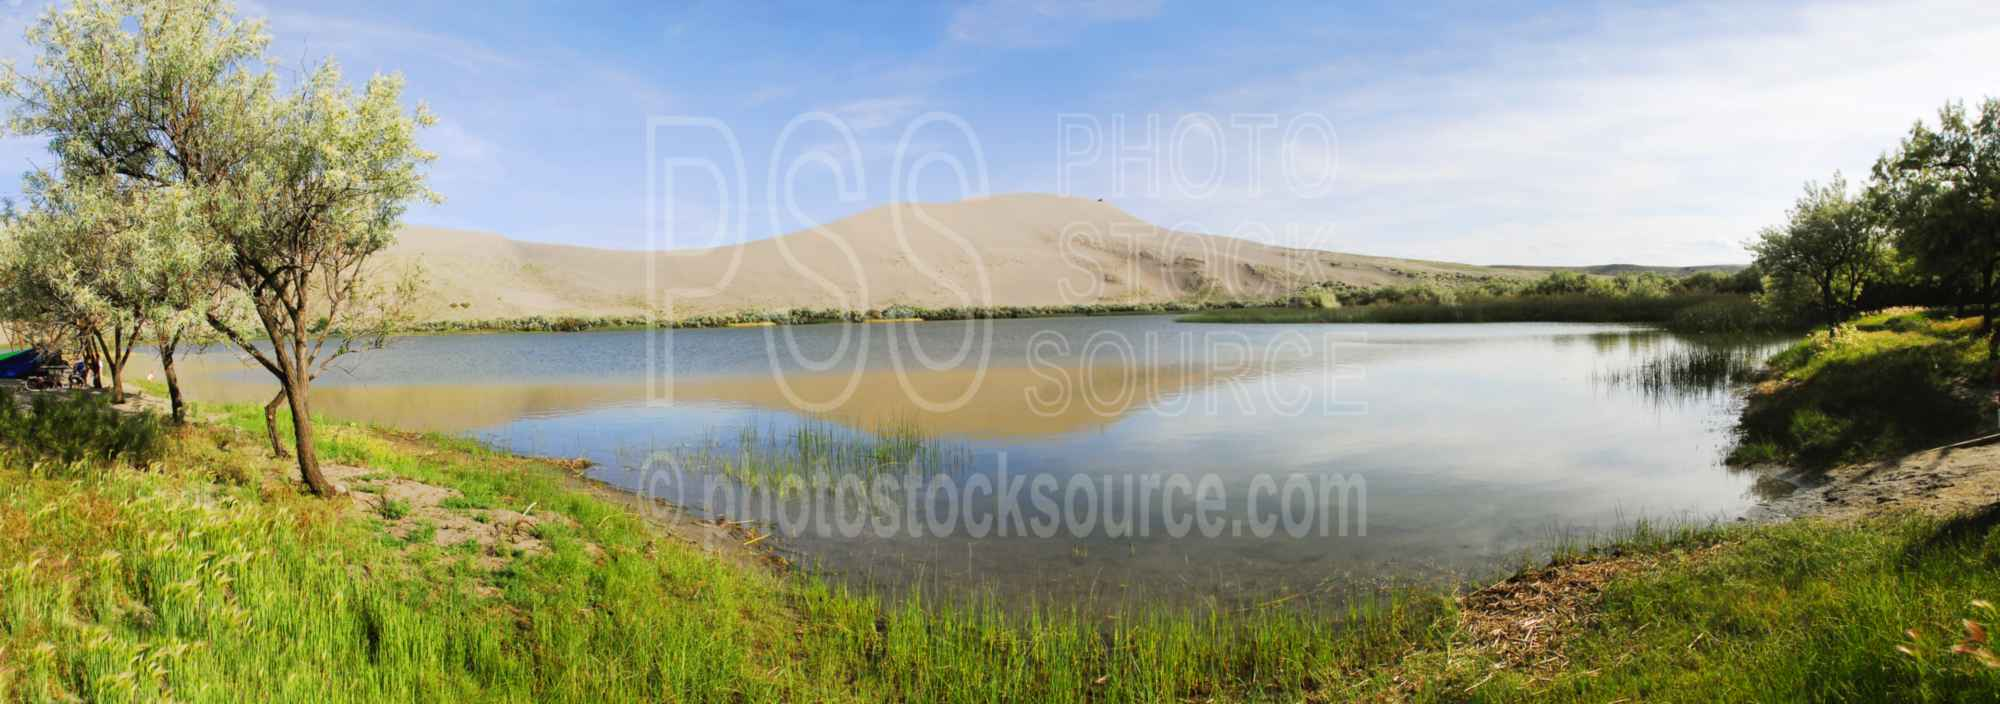 Bruneau Sand Dunes and Lake